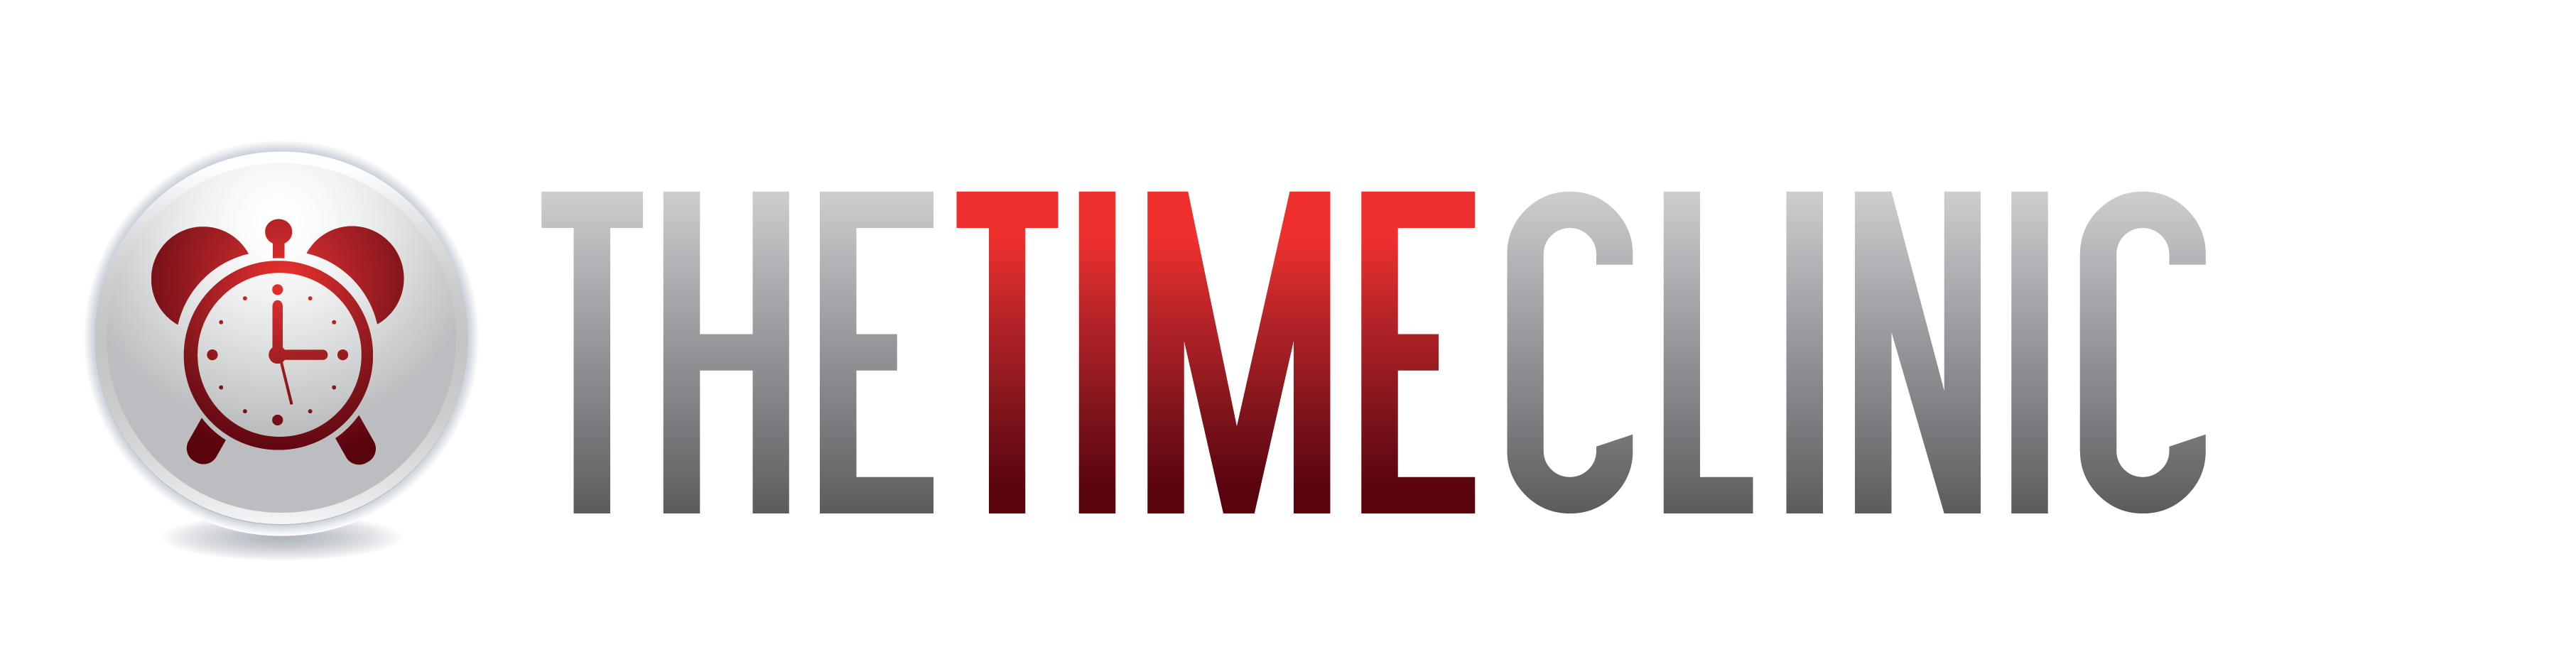 The Time Clinic